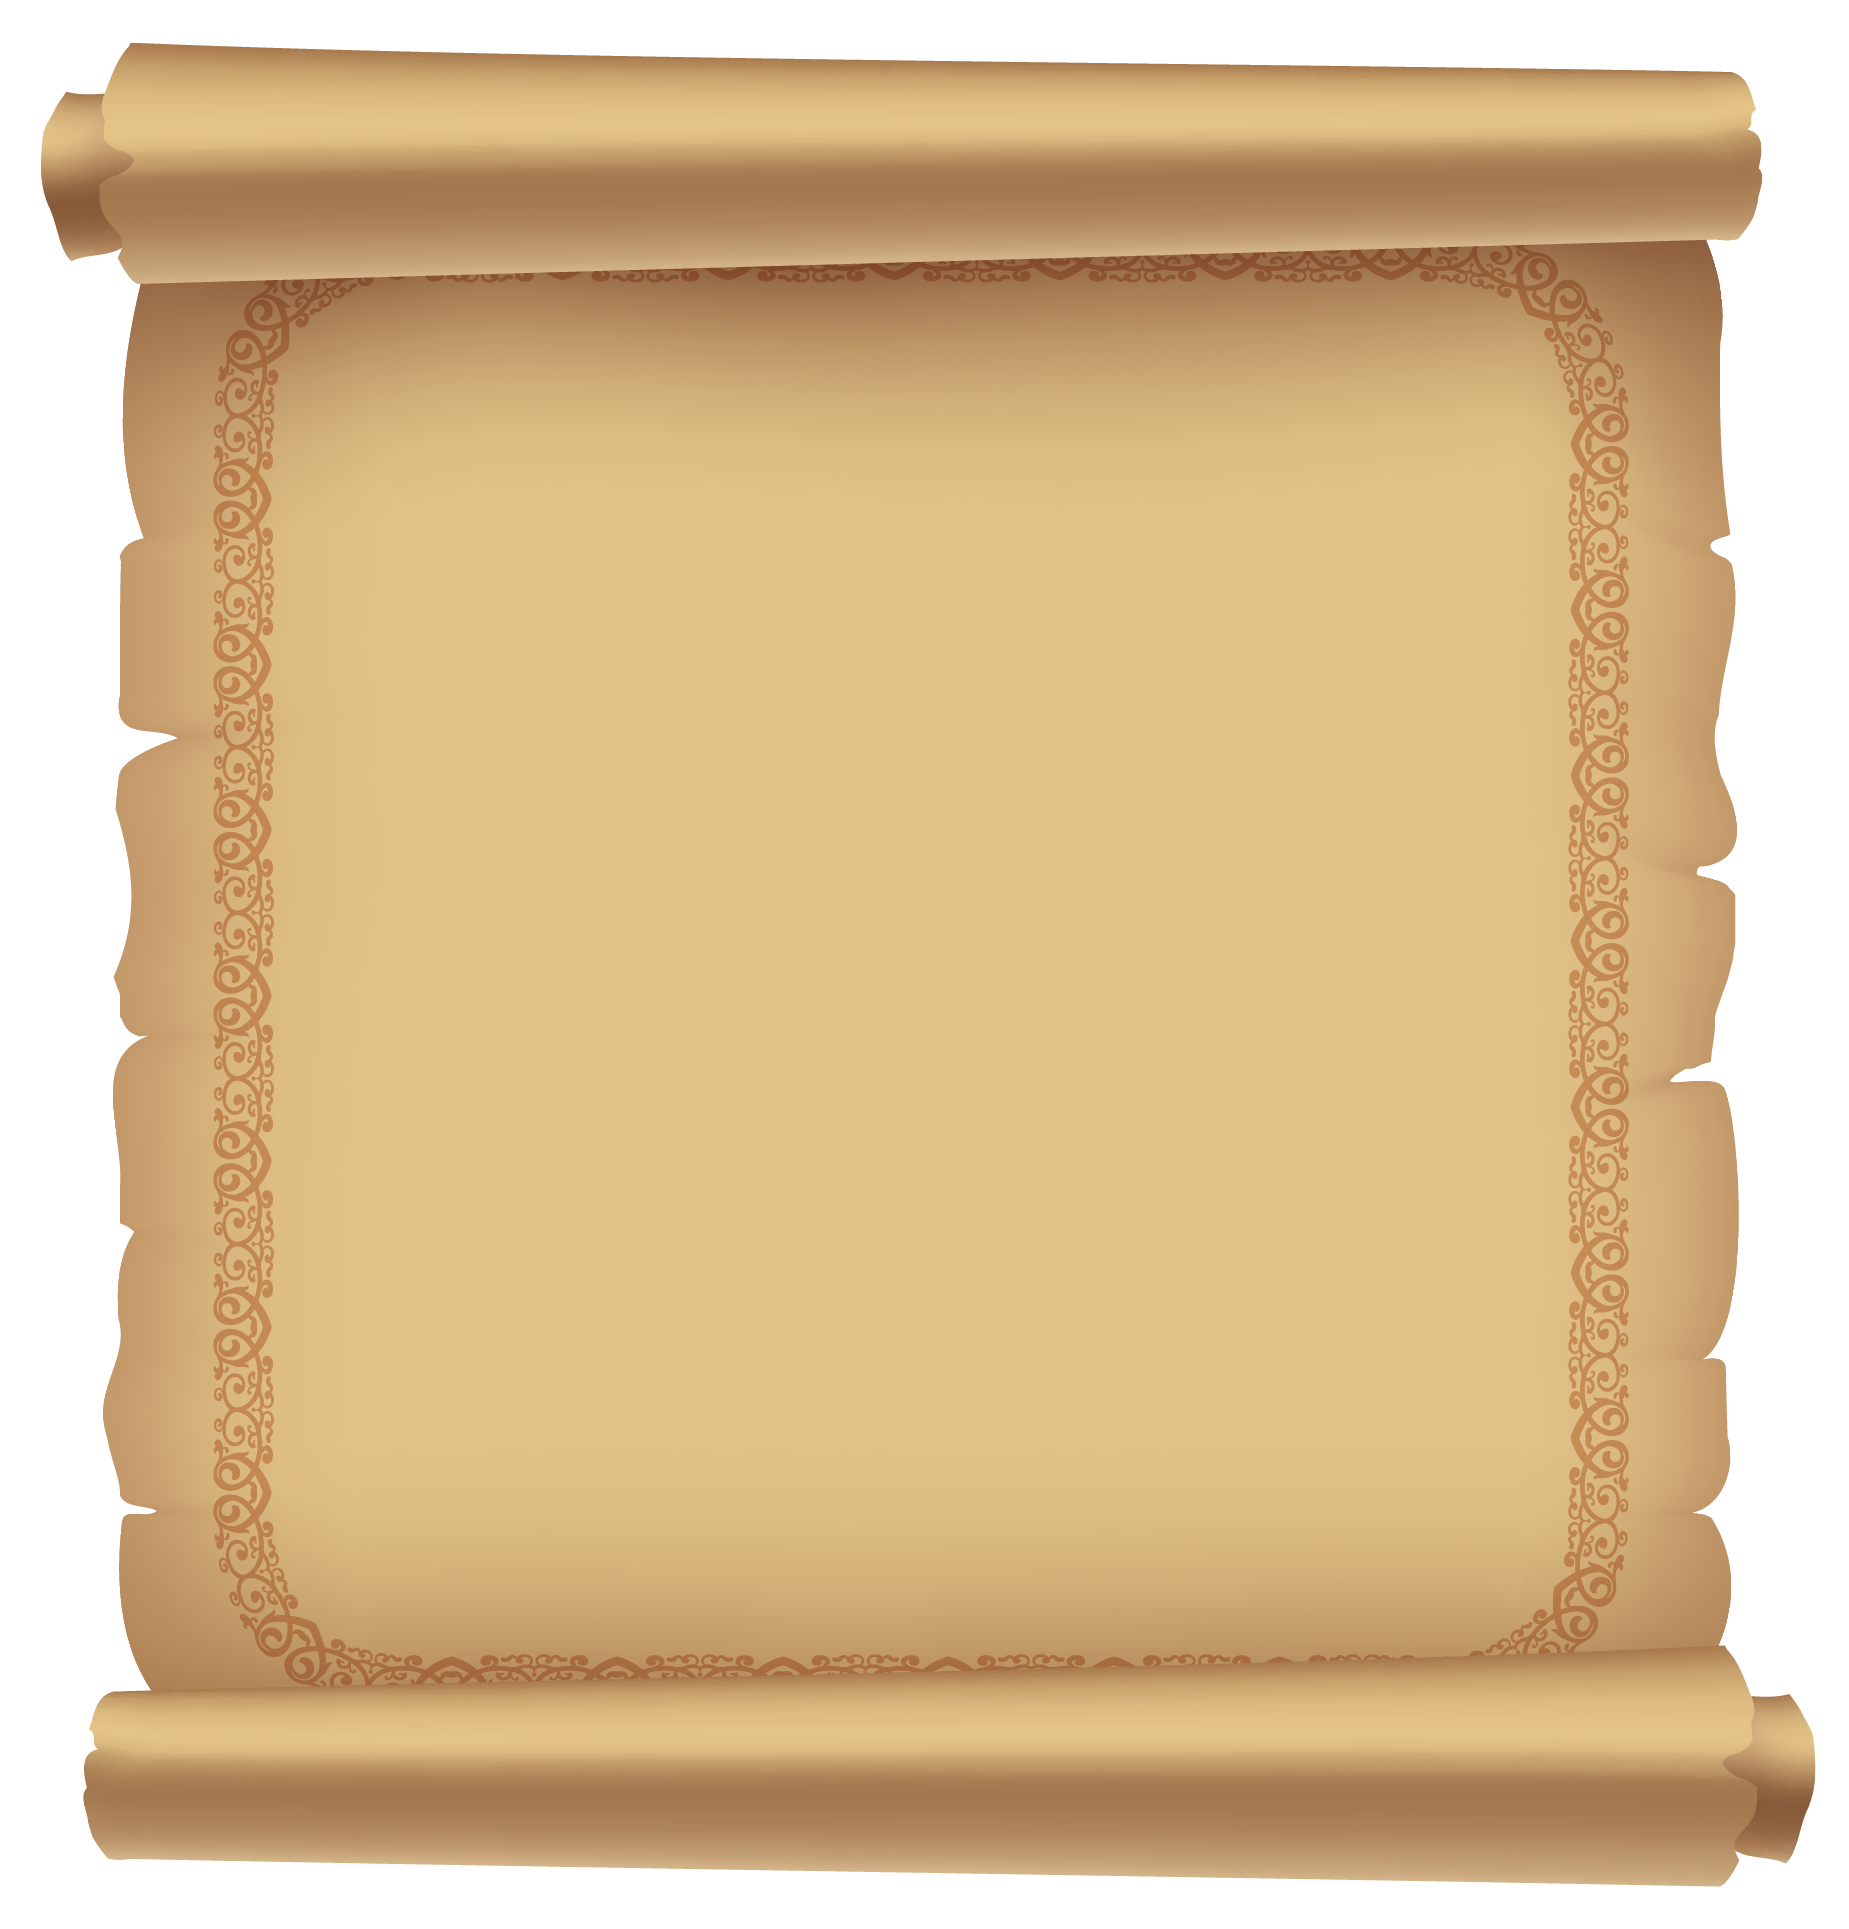 Scroll clipart ancient Ancient Paper Decorative PNG Scrolled